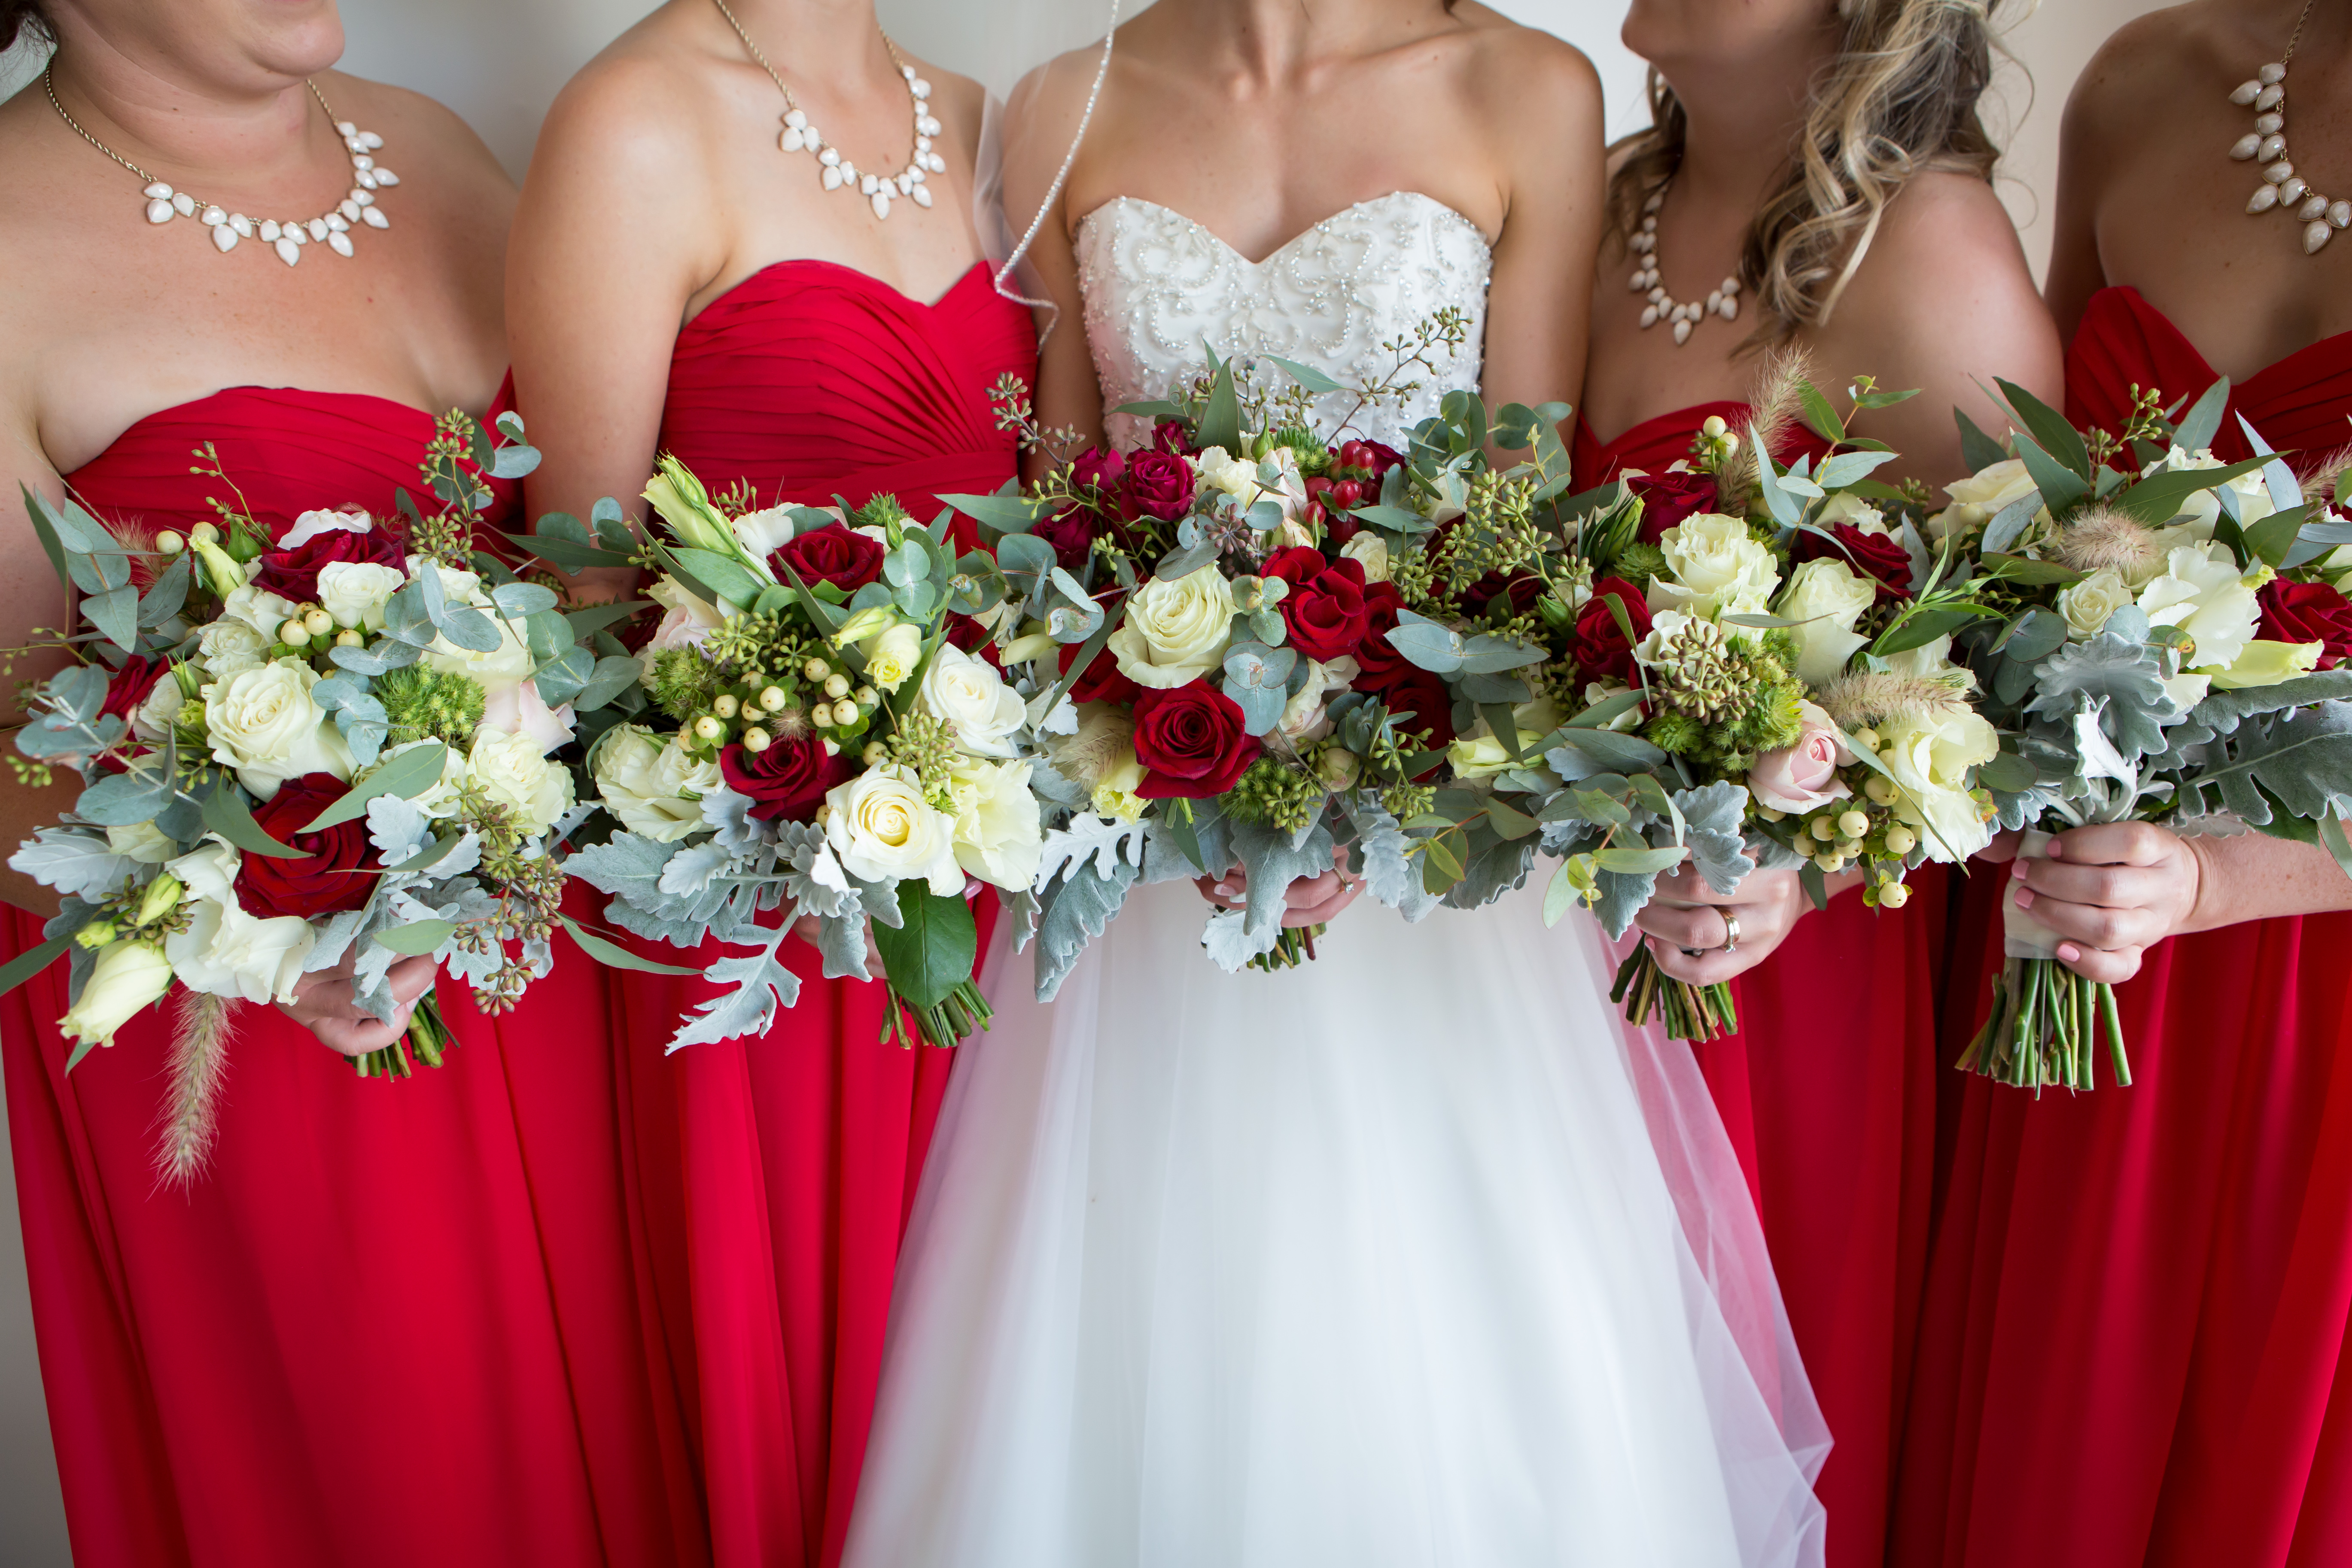 wedding-flowers-sydney-bridal-bridesmaids-bouquet.jpg